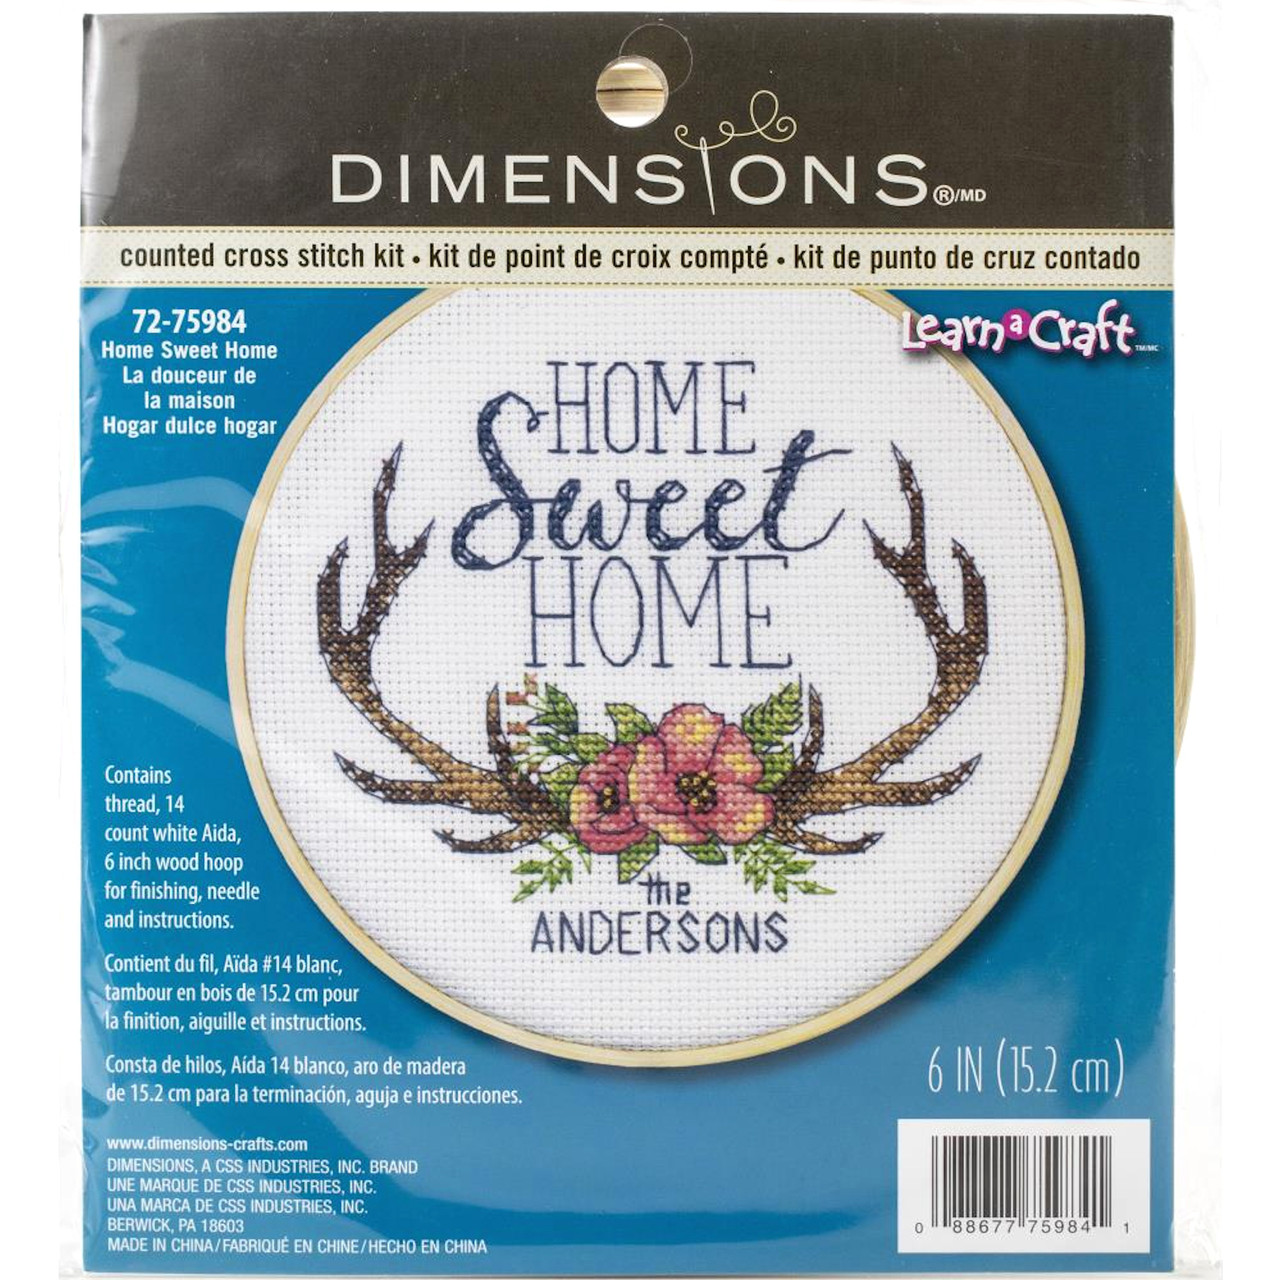 Dimensions Learn a Craft - Home Sweet Home